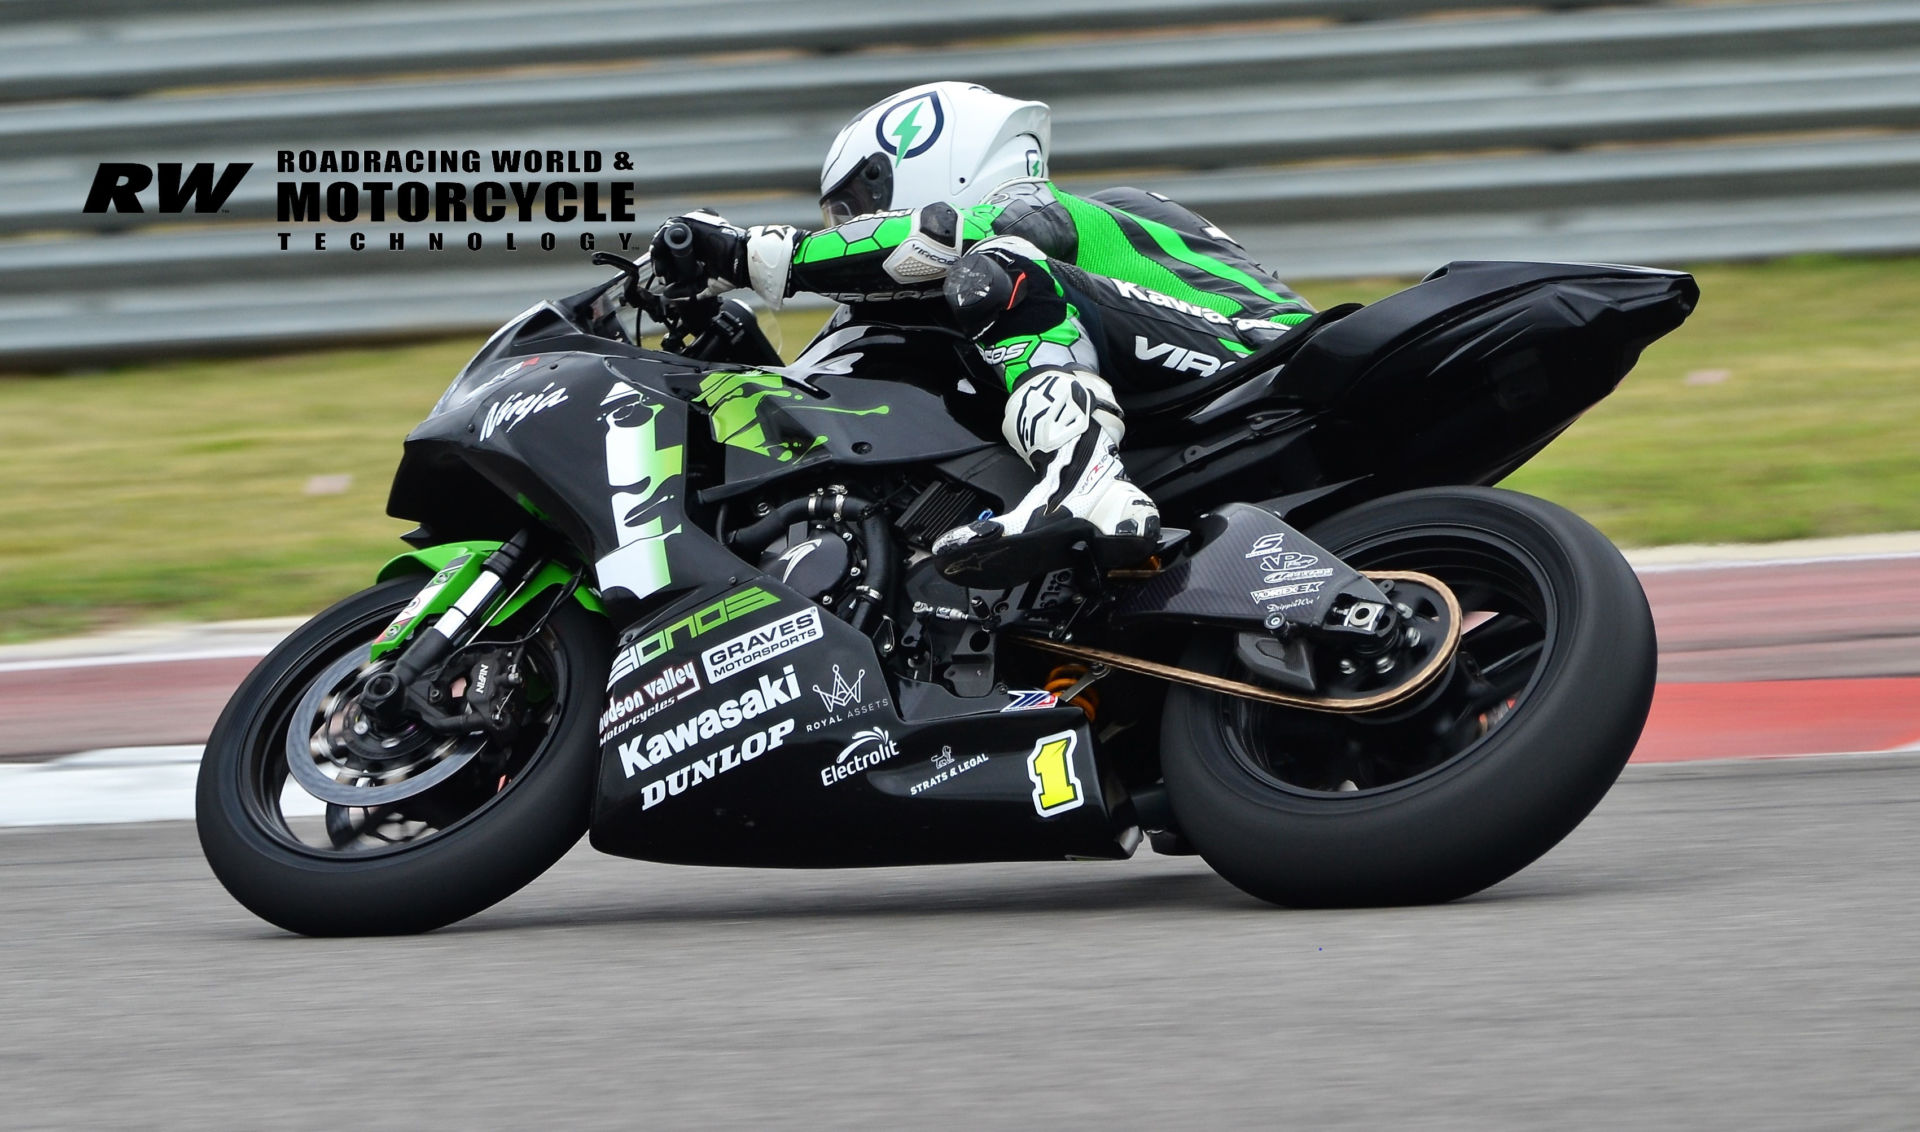 Richie Escalante (1) in action during MotoAmerica Supersport test session two at COTA. Photo by David Swarts.